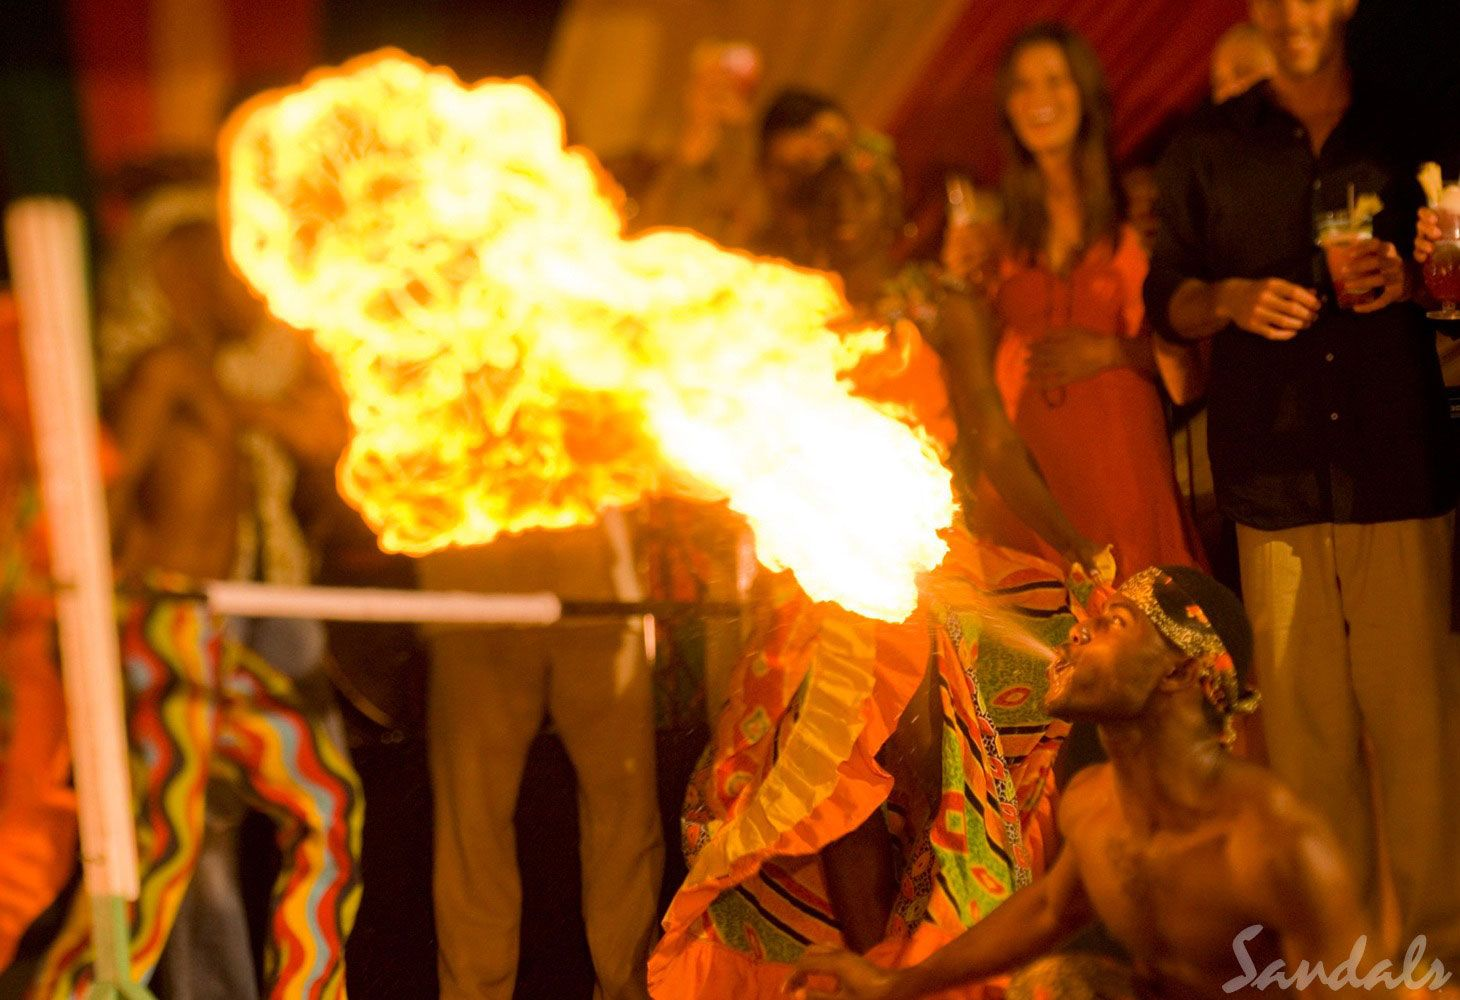 fire show at Sandals resorts